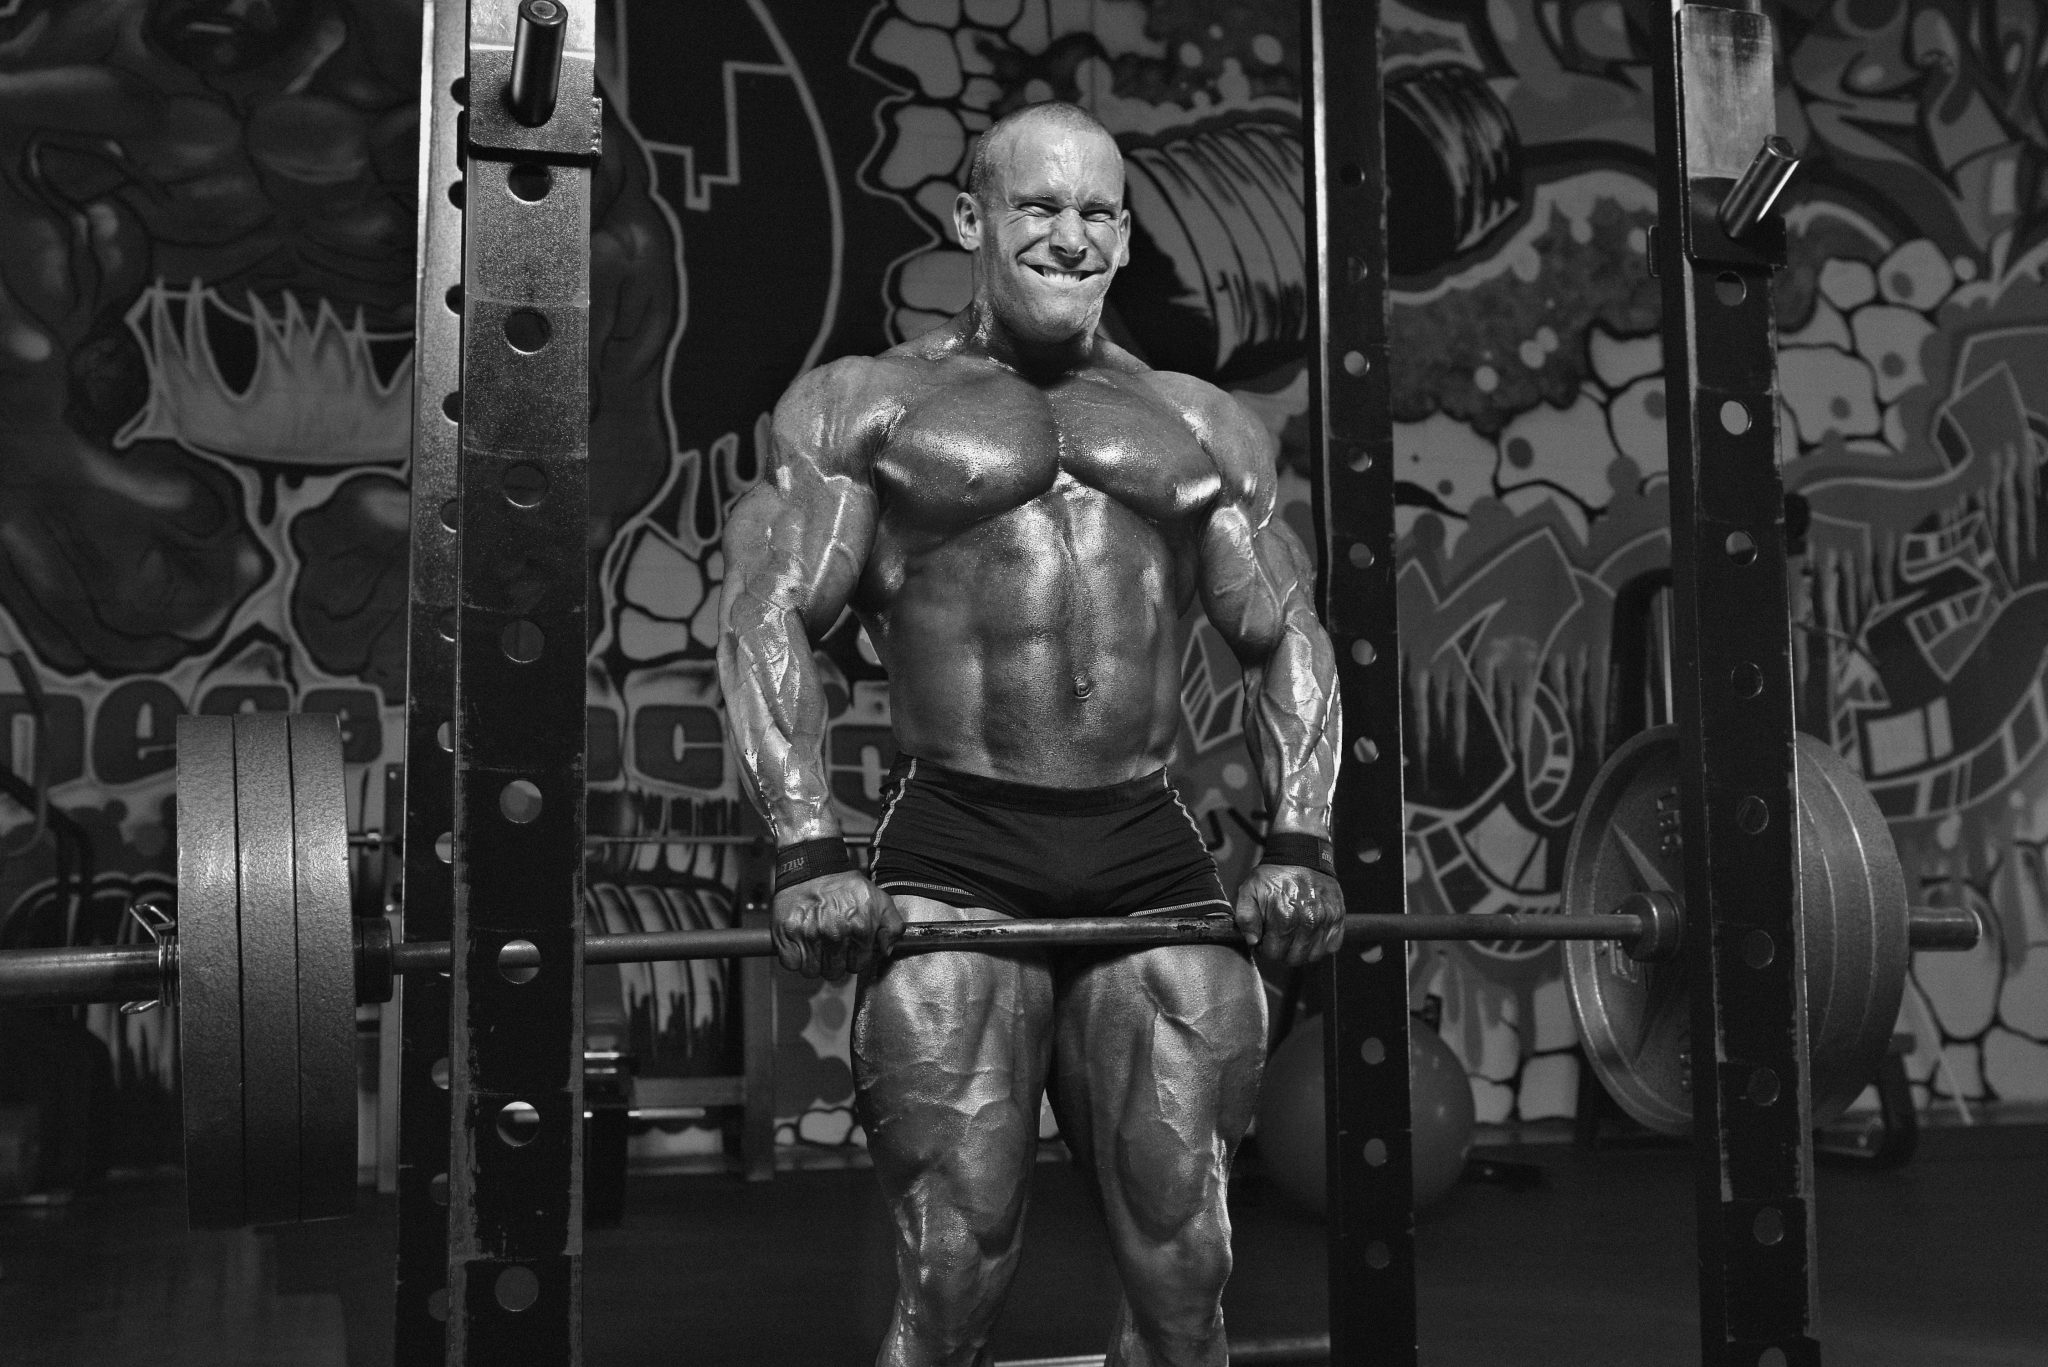 bodybuilding help Bodybuilding resources and information - bodybuilding forums and community for tips, advice, tutorials, video and more.